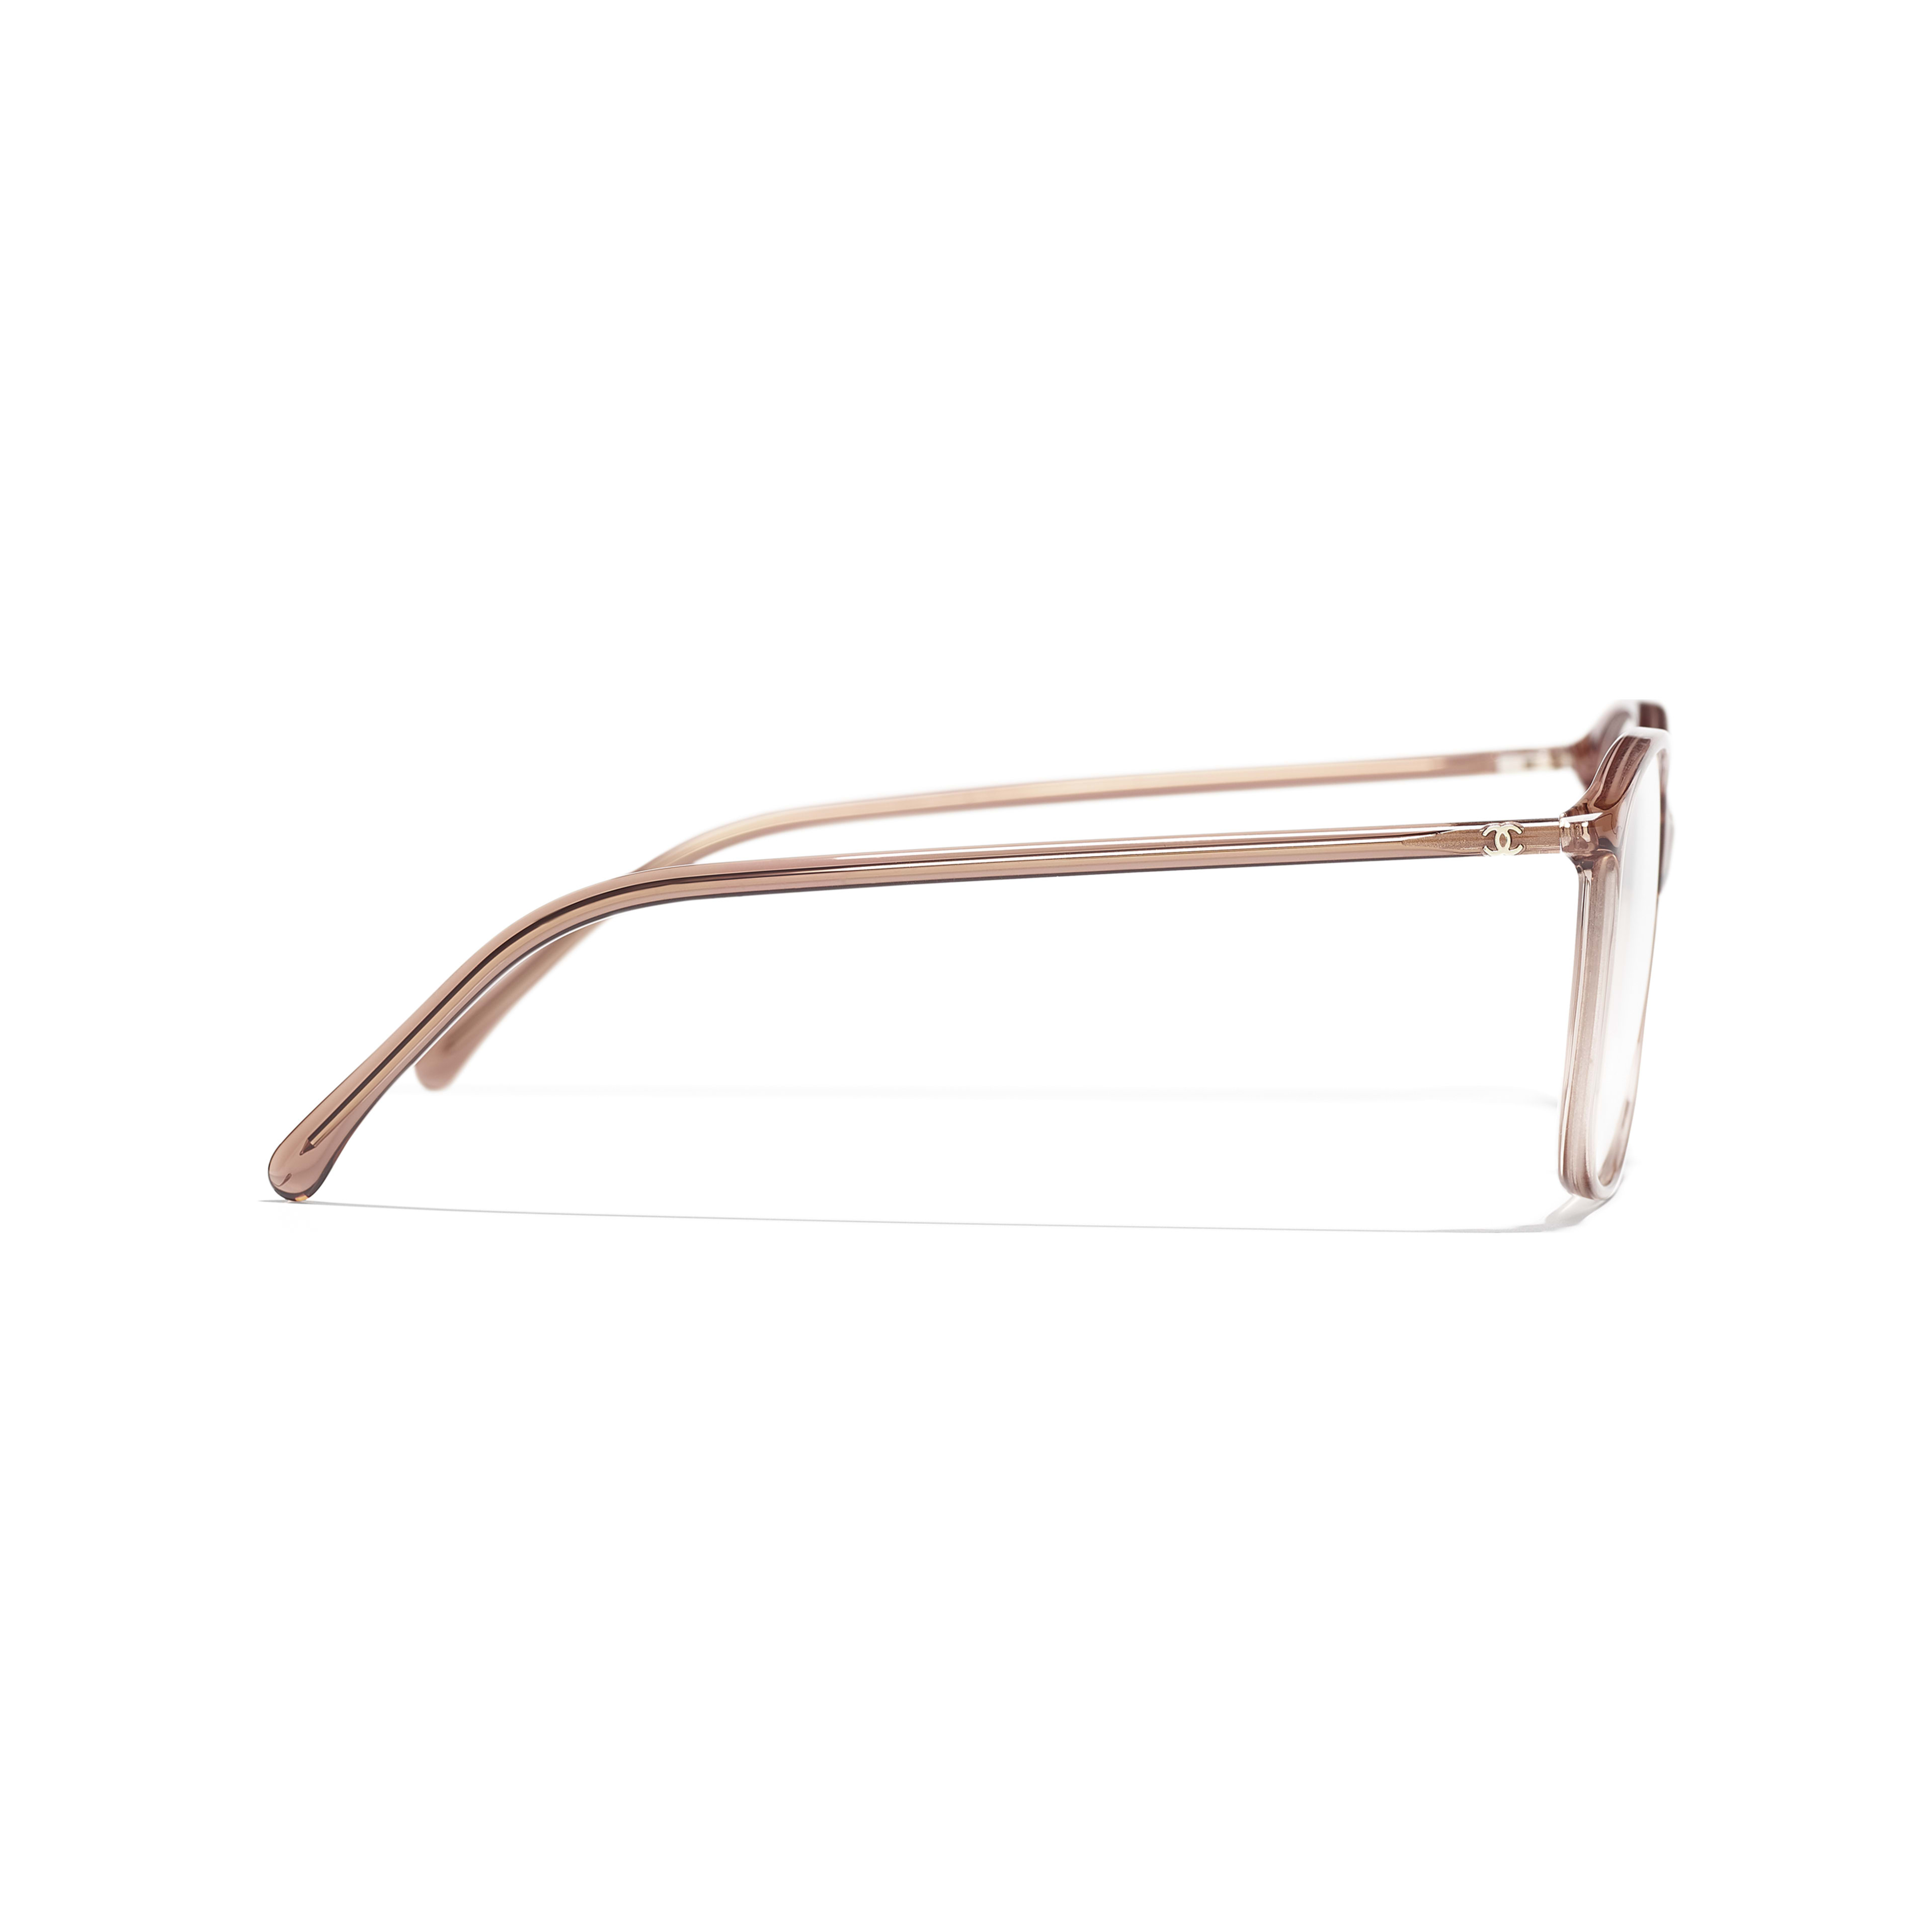 Square Eyeglasses - Brown - Acetate - Other view - see full sized version